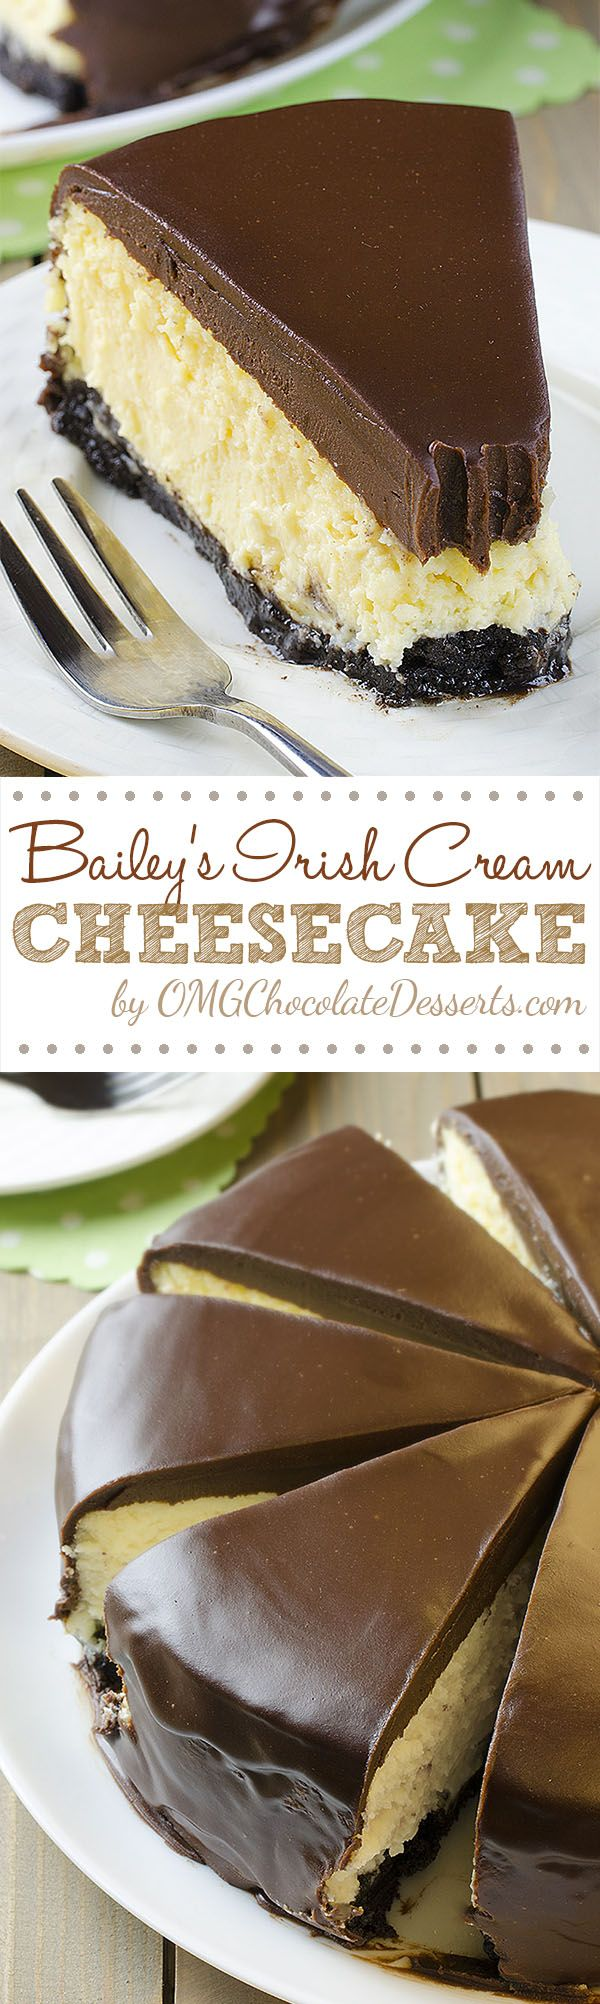 Boozy, sinful and decadent Irish Cream Cheesecake loaded with Bailey's Irish Cream, will be great St. Patrick's Day dessert. #St.Patrick's #day #desserts